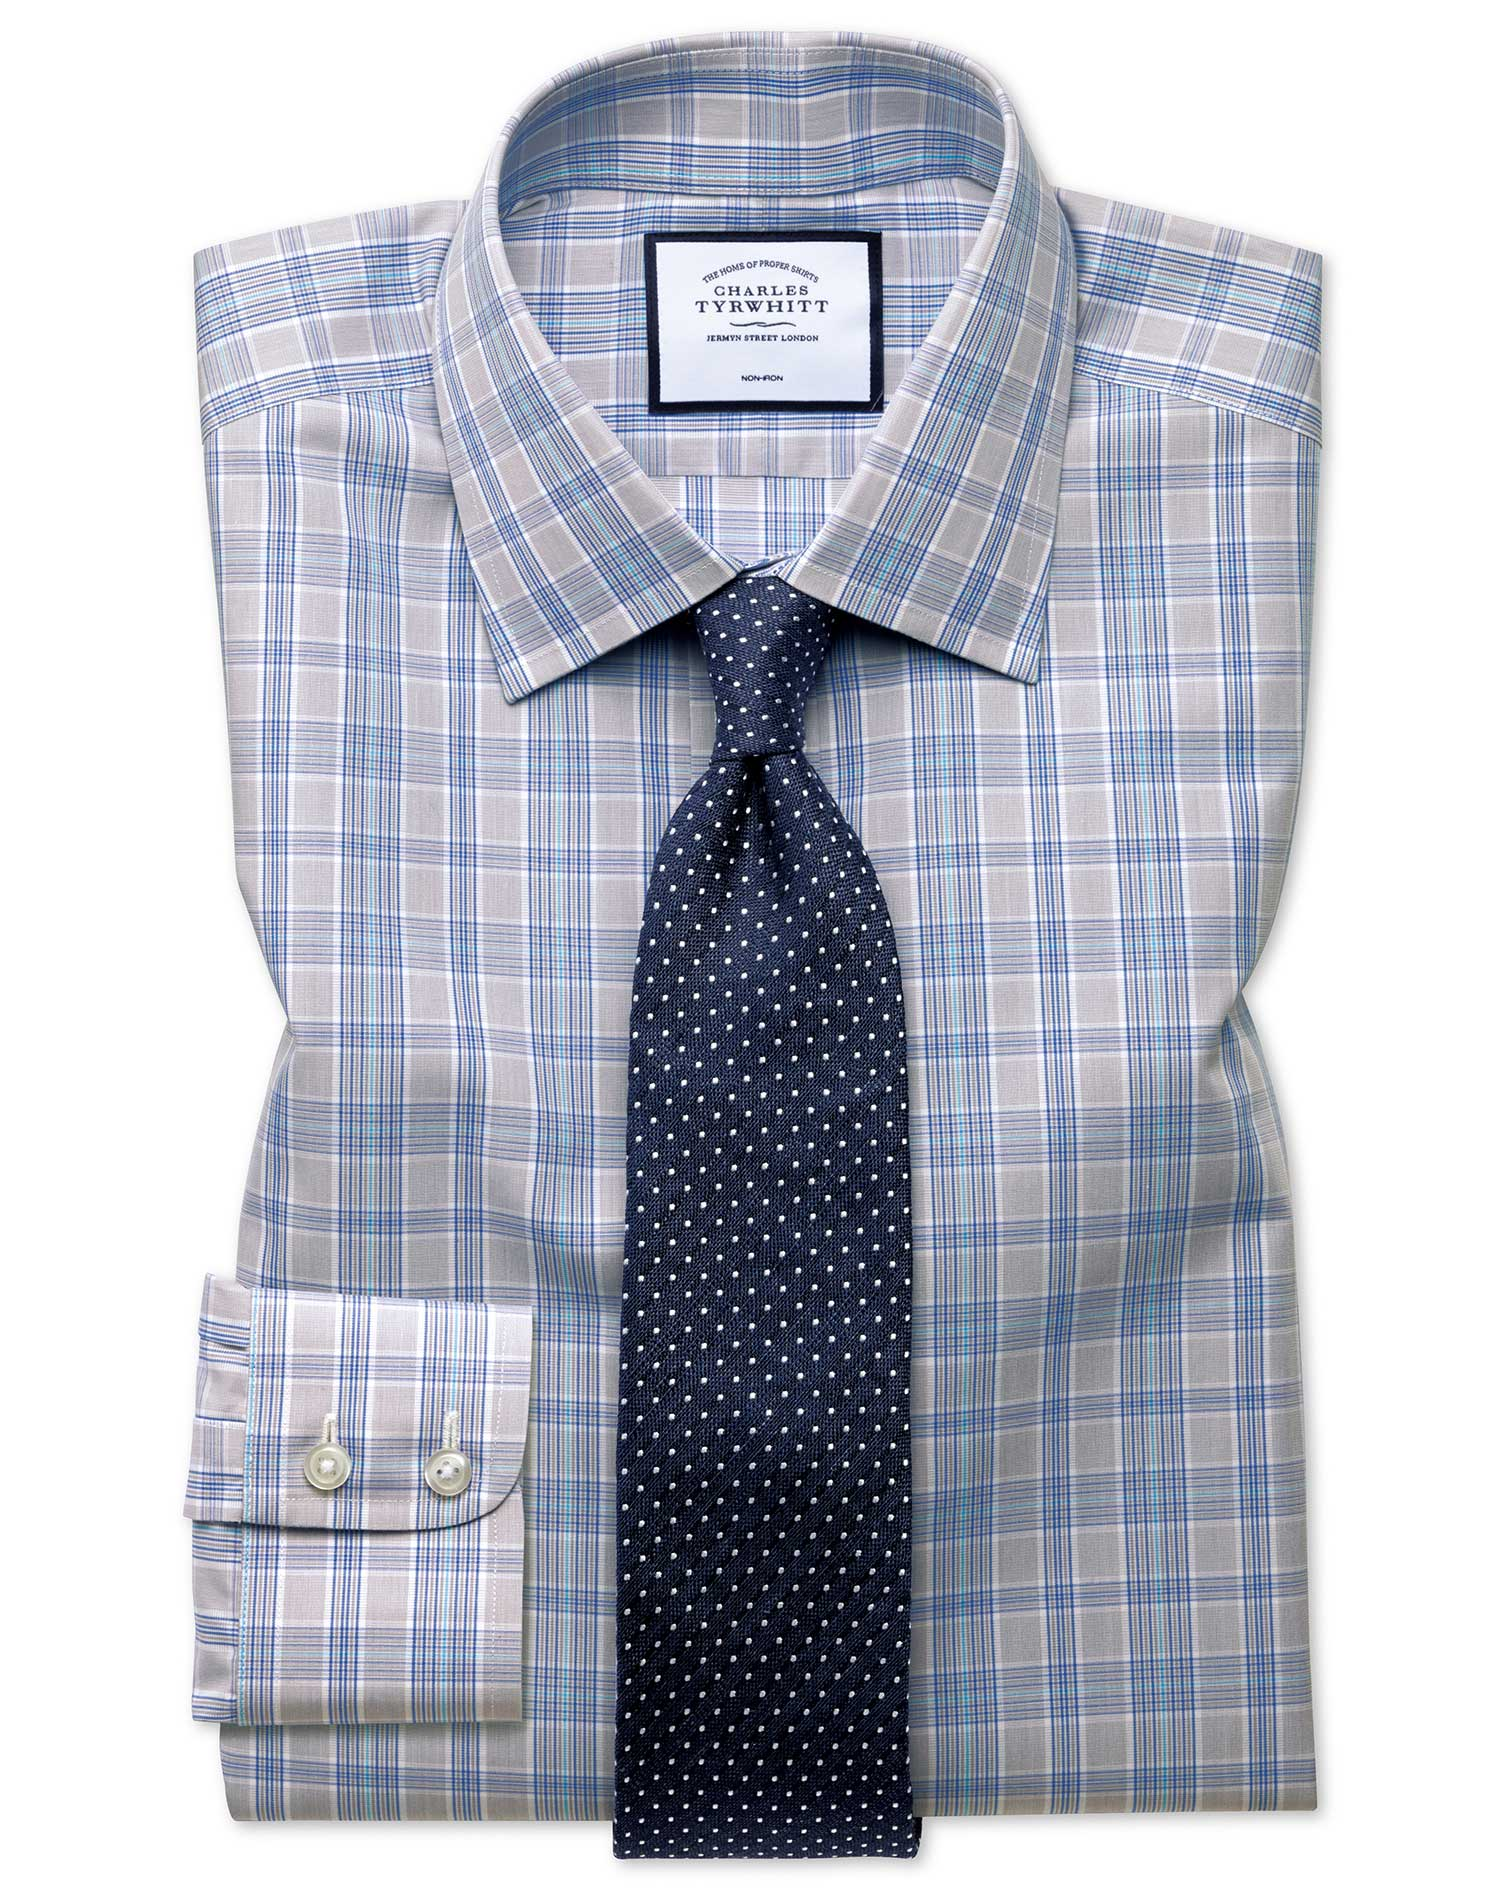 Slim Fit Non-Iron Prince Of Wales Grey and Aqua Cotton Formal Shirt Double Cuff Size 15.5/33 by Char